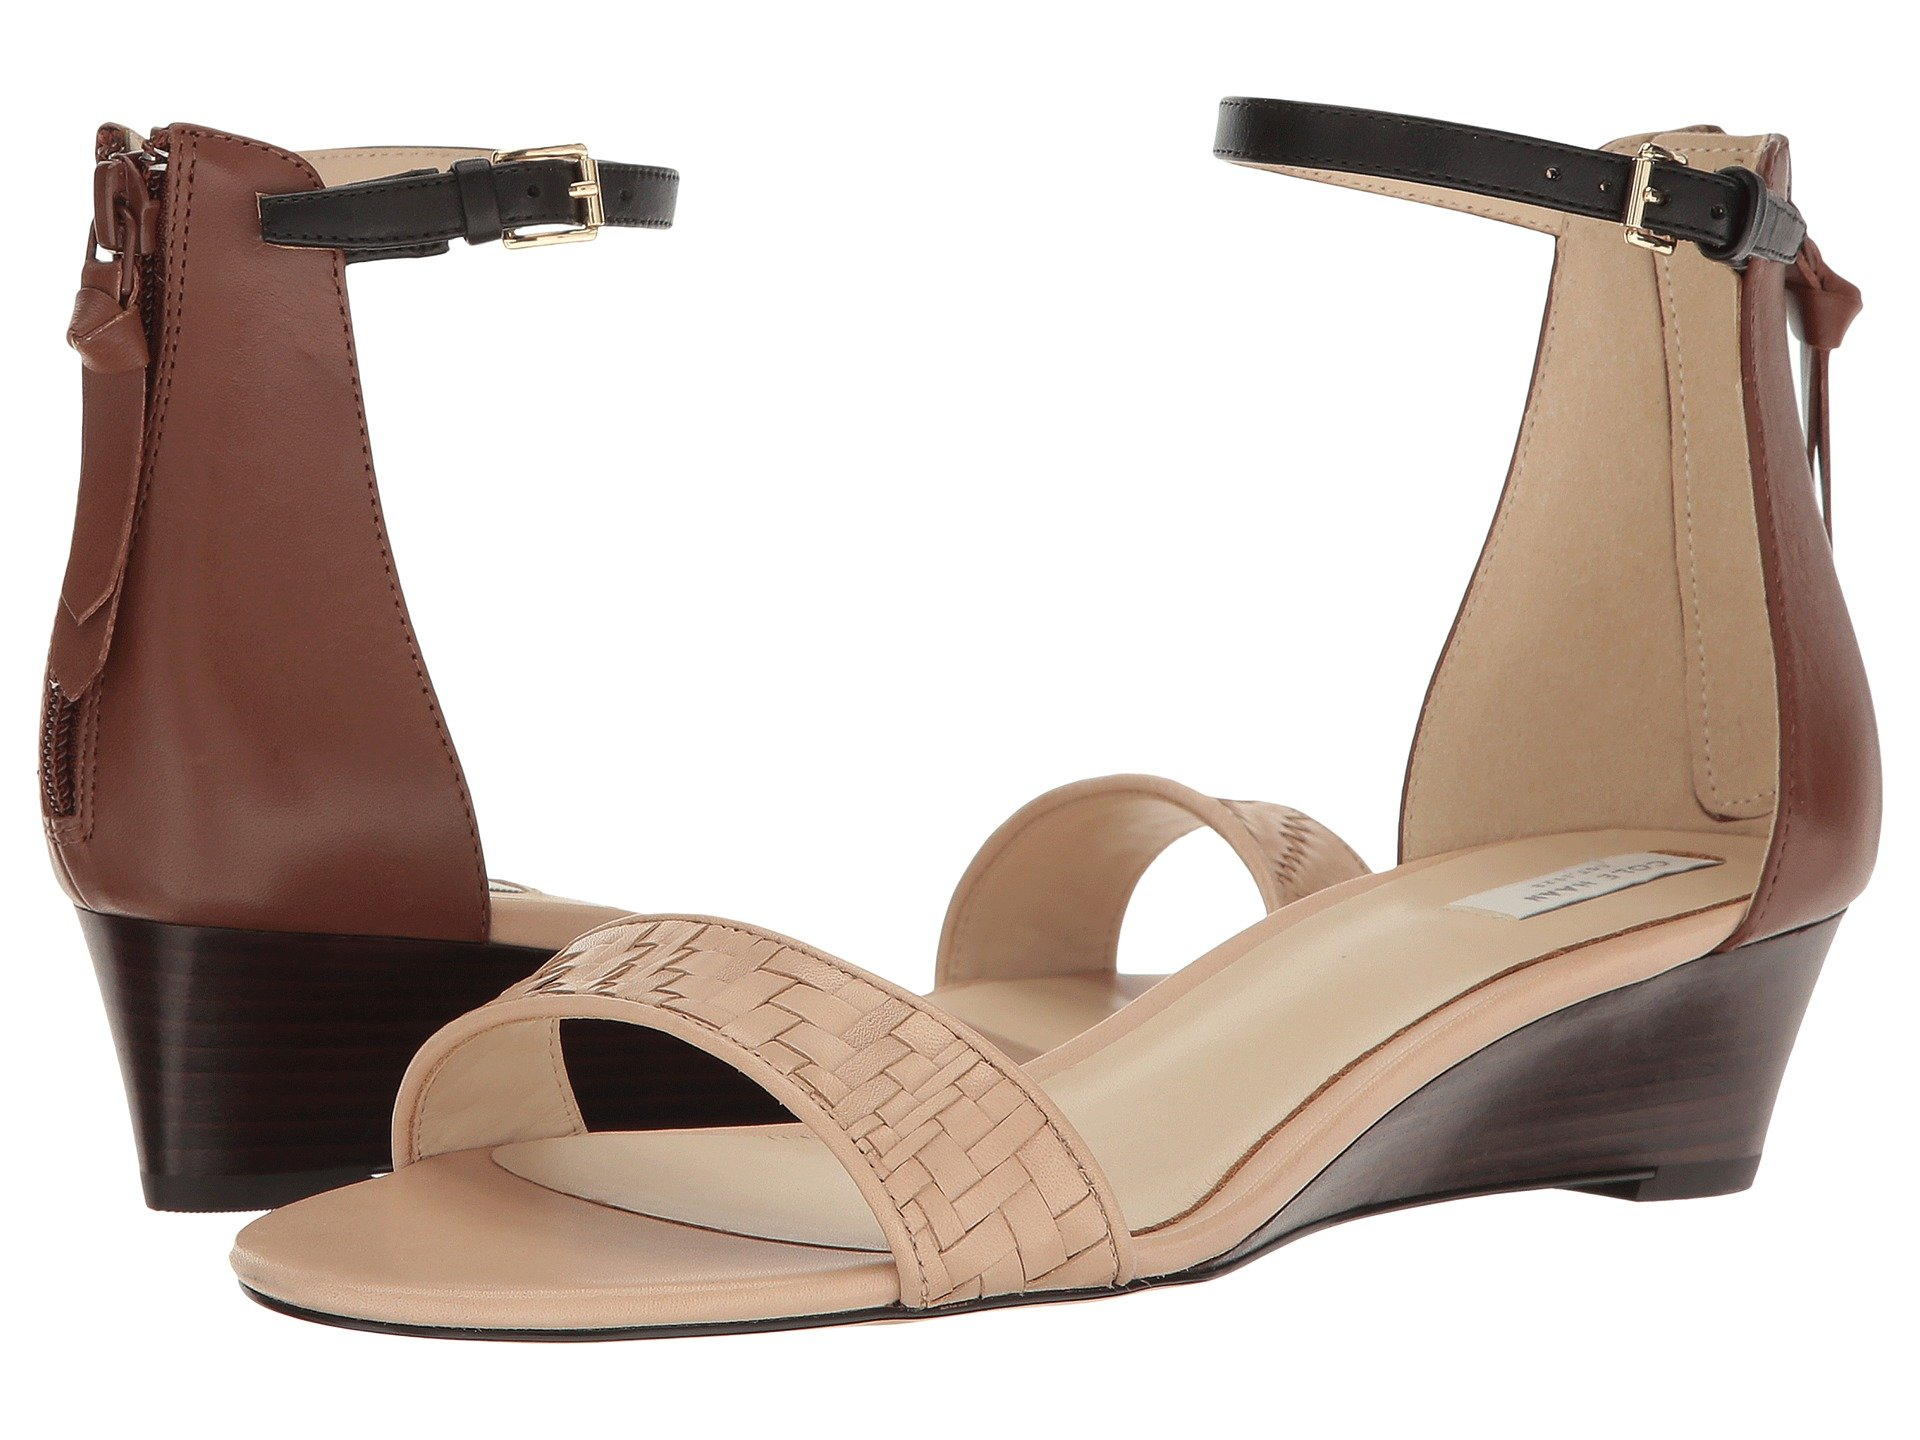 Genevieve Weave Wedge, Nude Genevieve Weave/Harvest Brown Leather/Black Leather